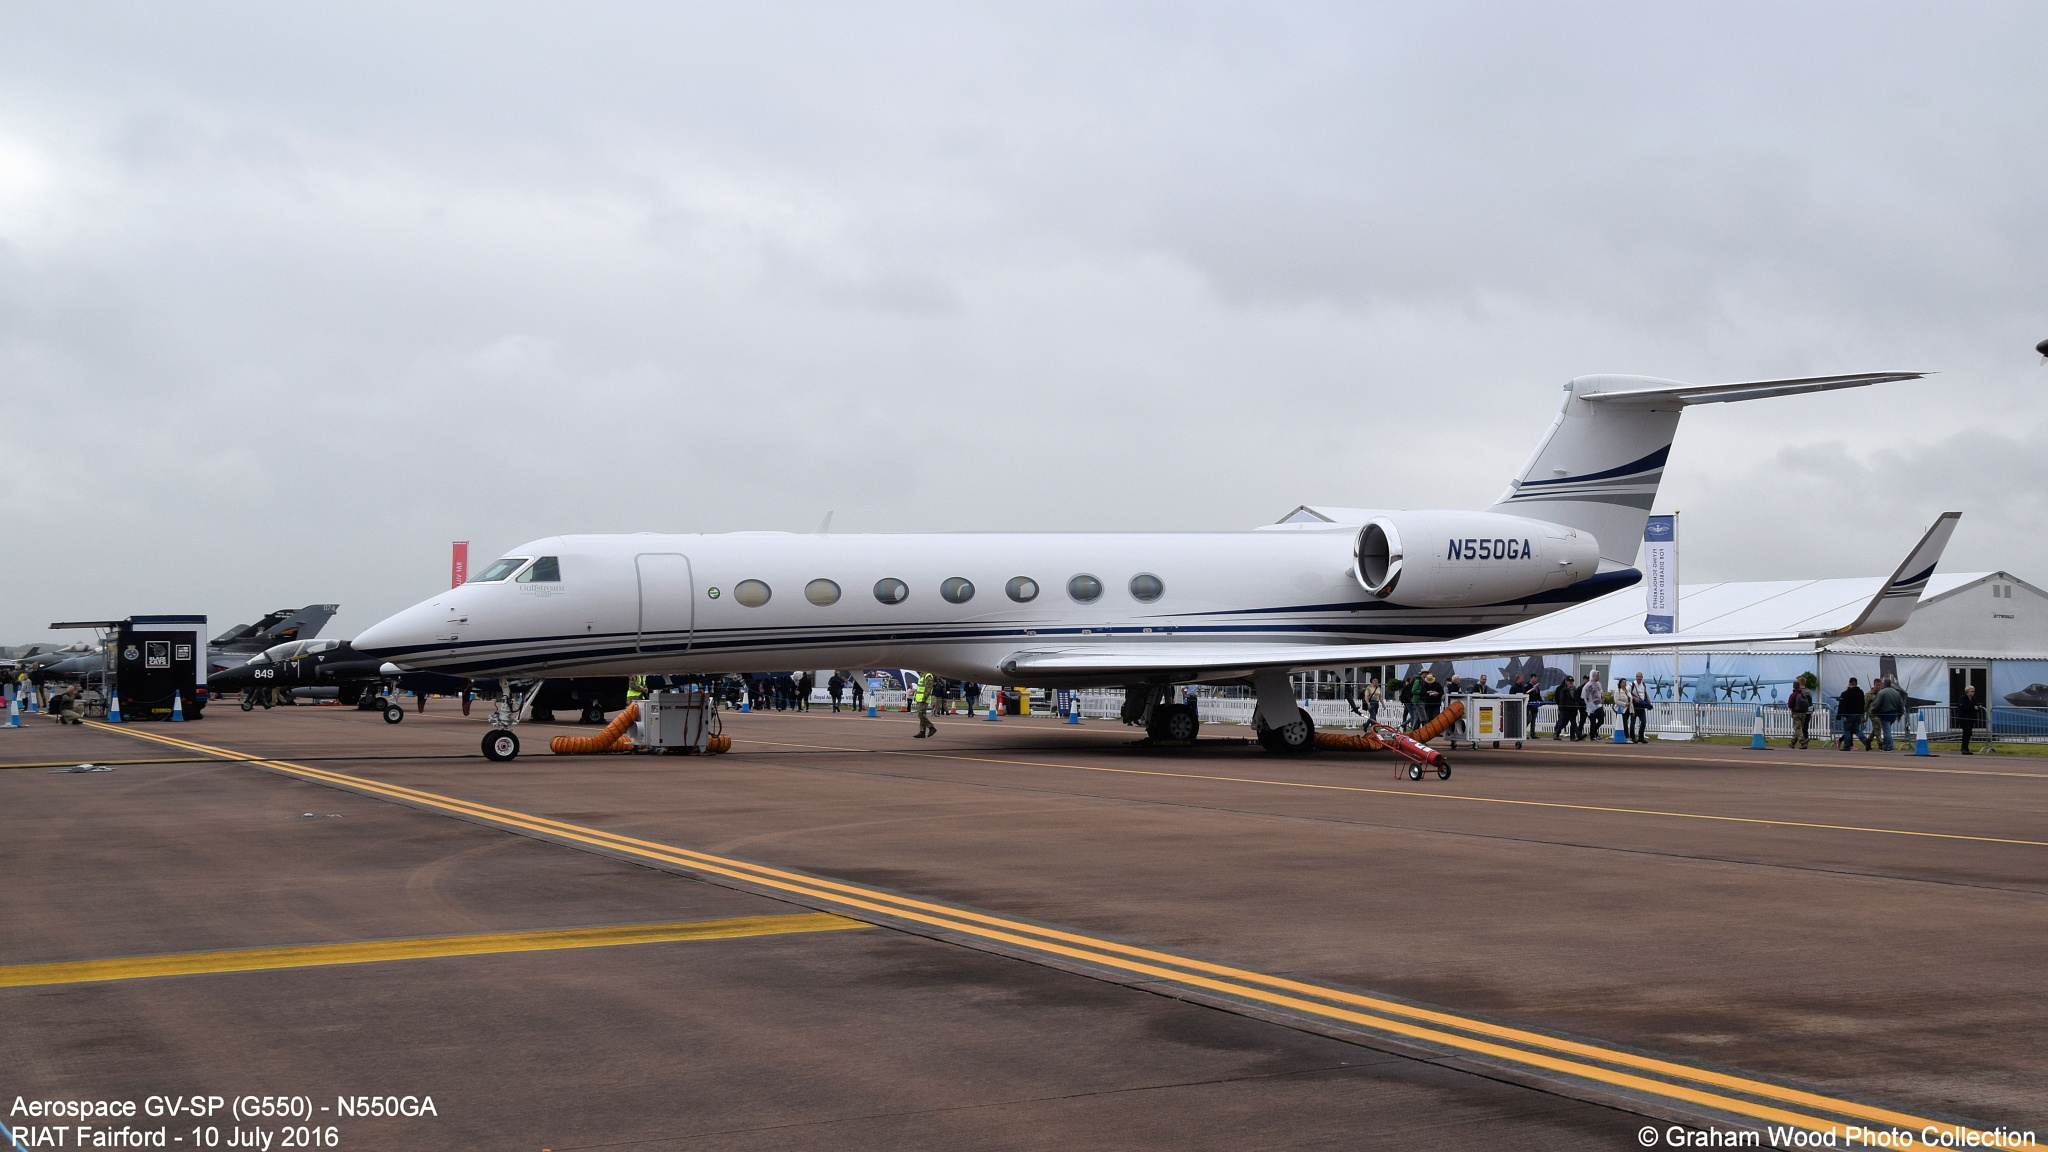 Aerospace GV-SP (G550) - N550GA by Graham Wood Photo Collection